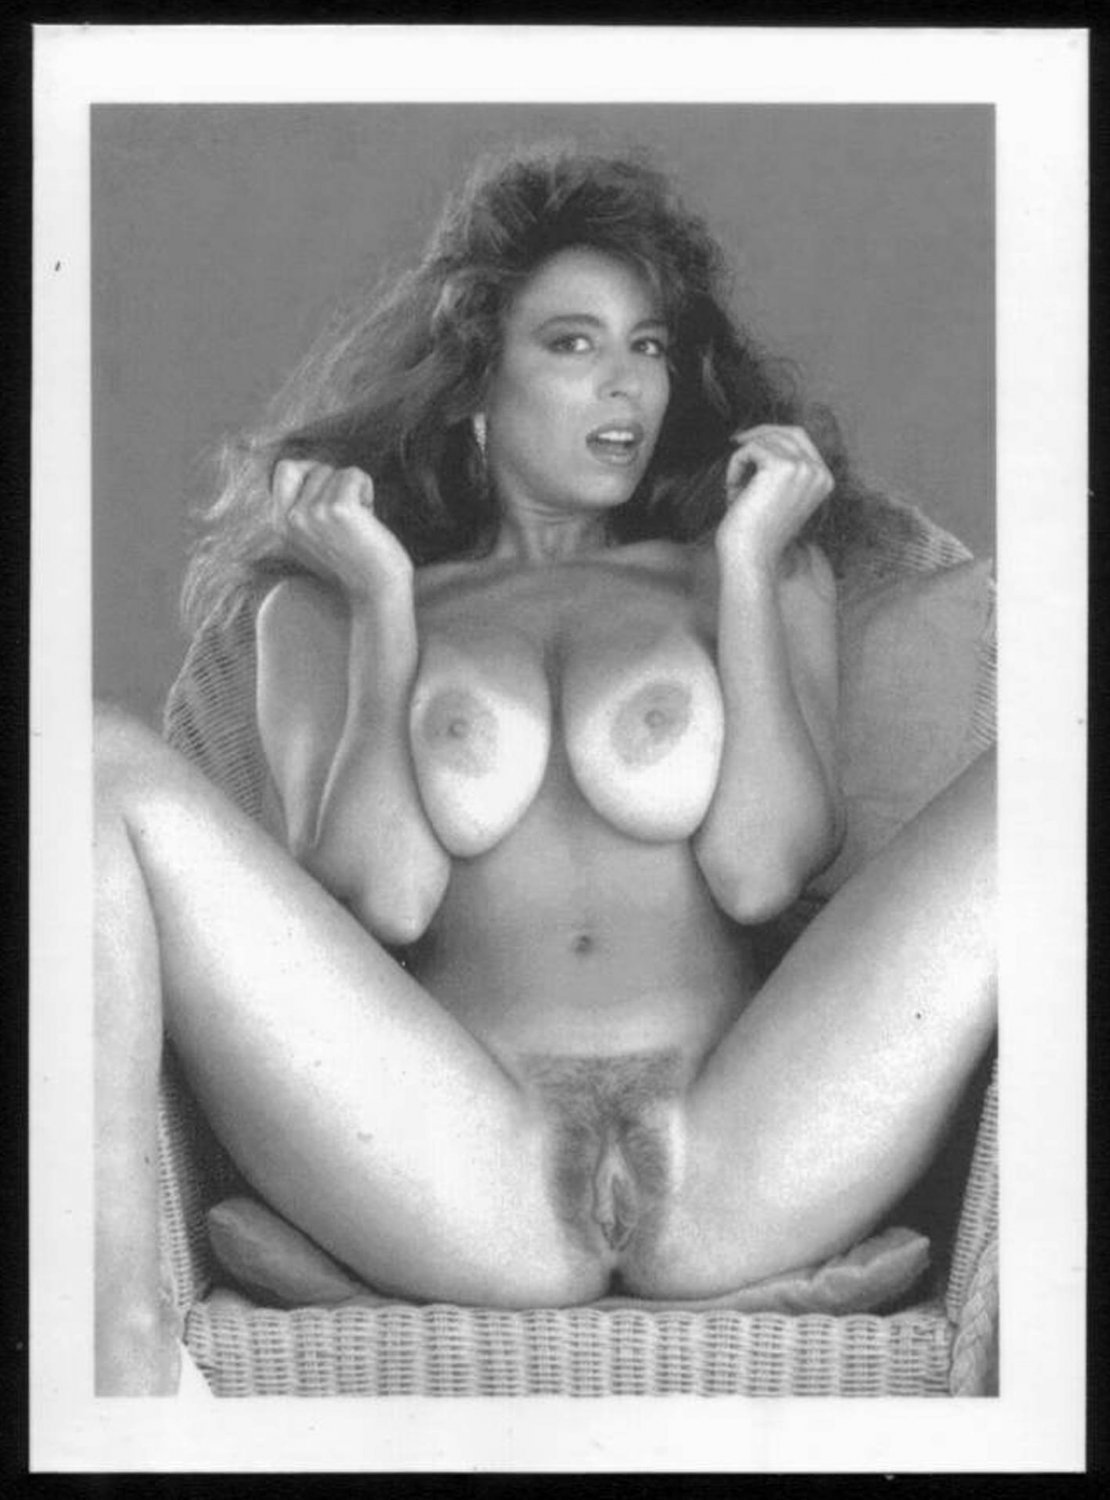 CHRISTY CANYON TOTALLY NUDE HEAVY HANGING BREASTS HAIRY PUSSY 5X7 REPRINT #136